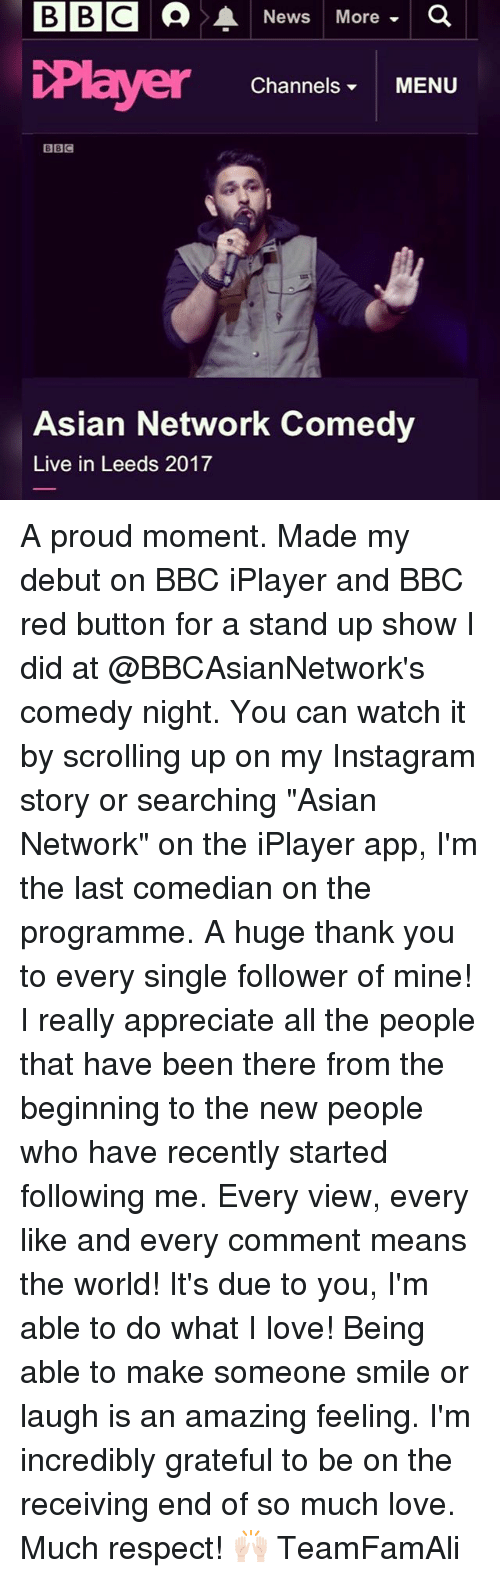 asian network iplayer